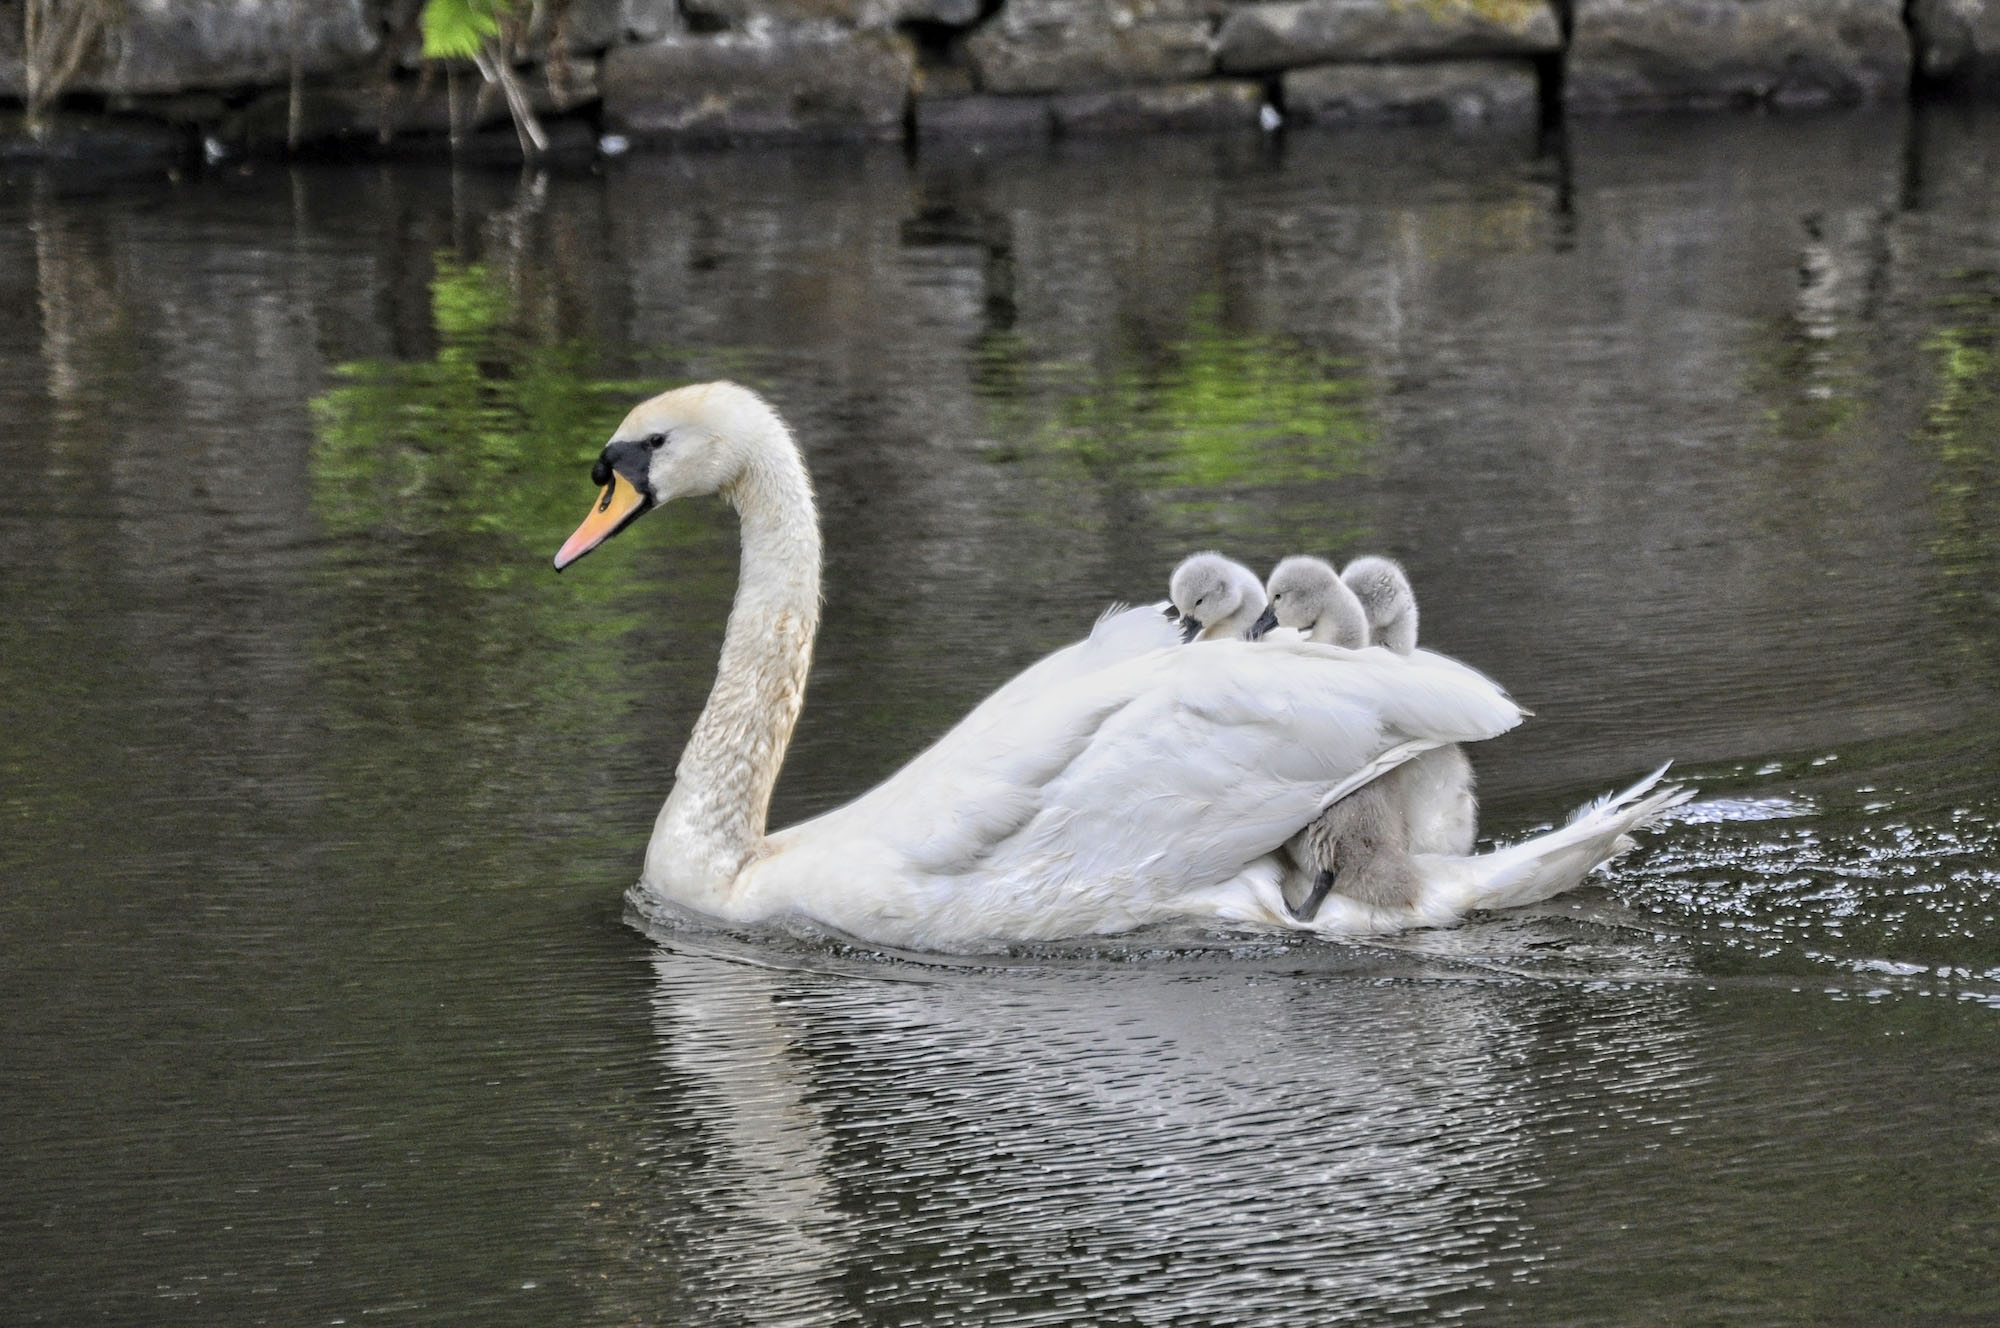 5.-SWANS-AT-THE-EXBURY-EGG-BURNLEY-PHOTOGRAPHER-Stephen-Johnson